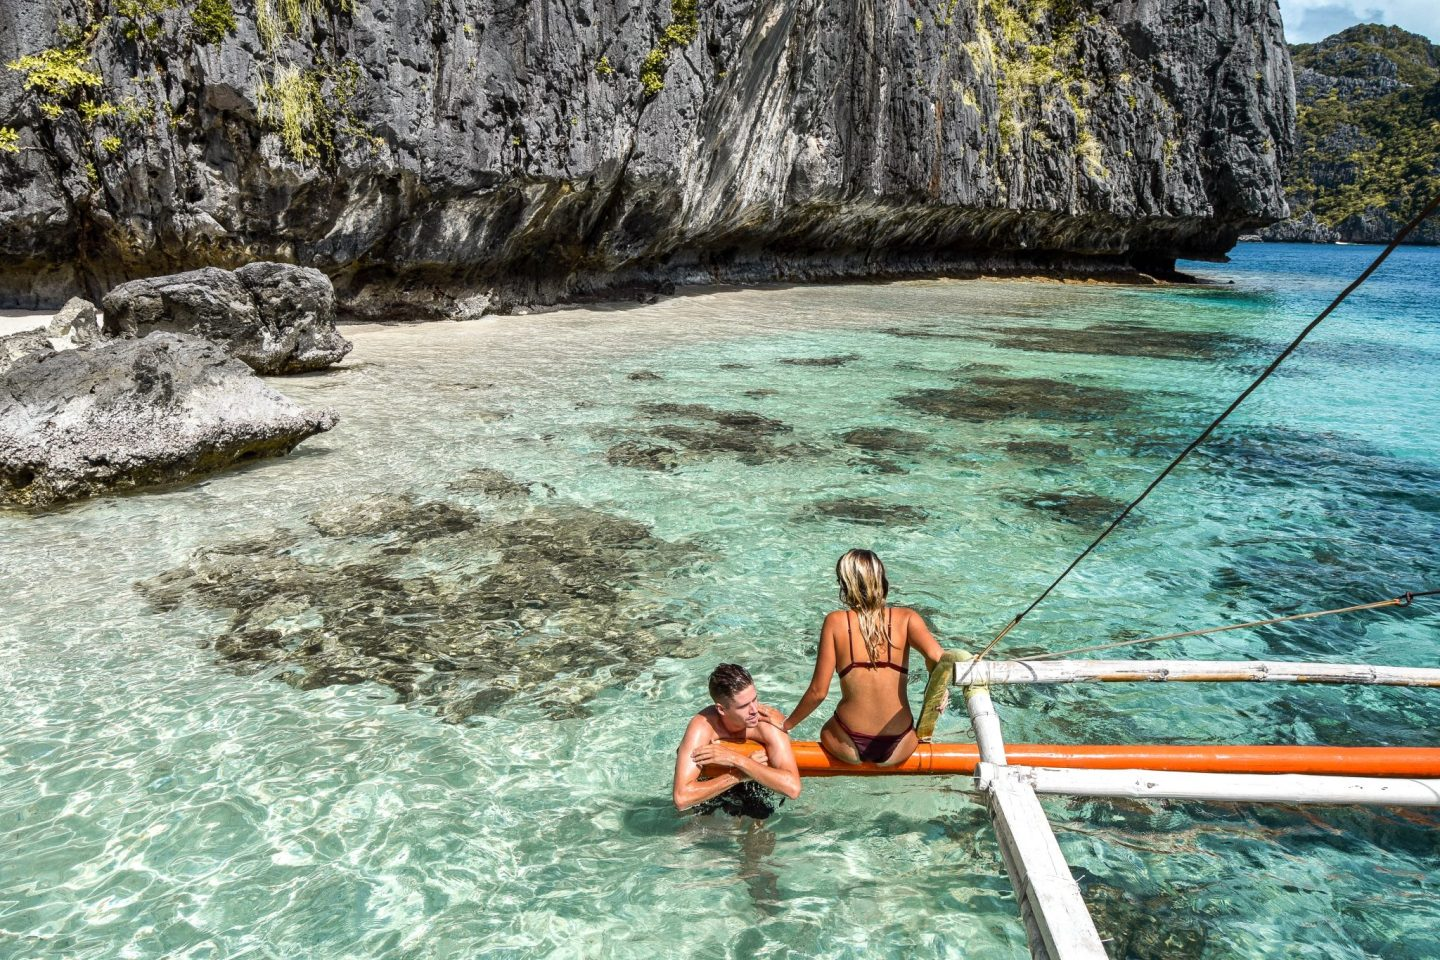 Tour Packages In El Nido & Things To Do In El Nido